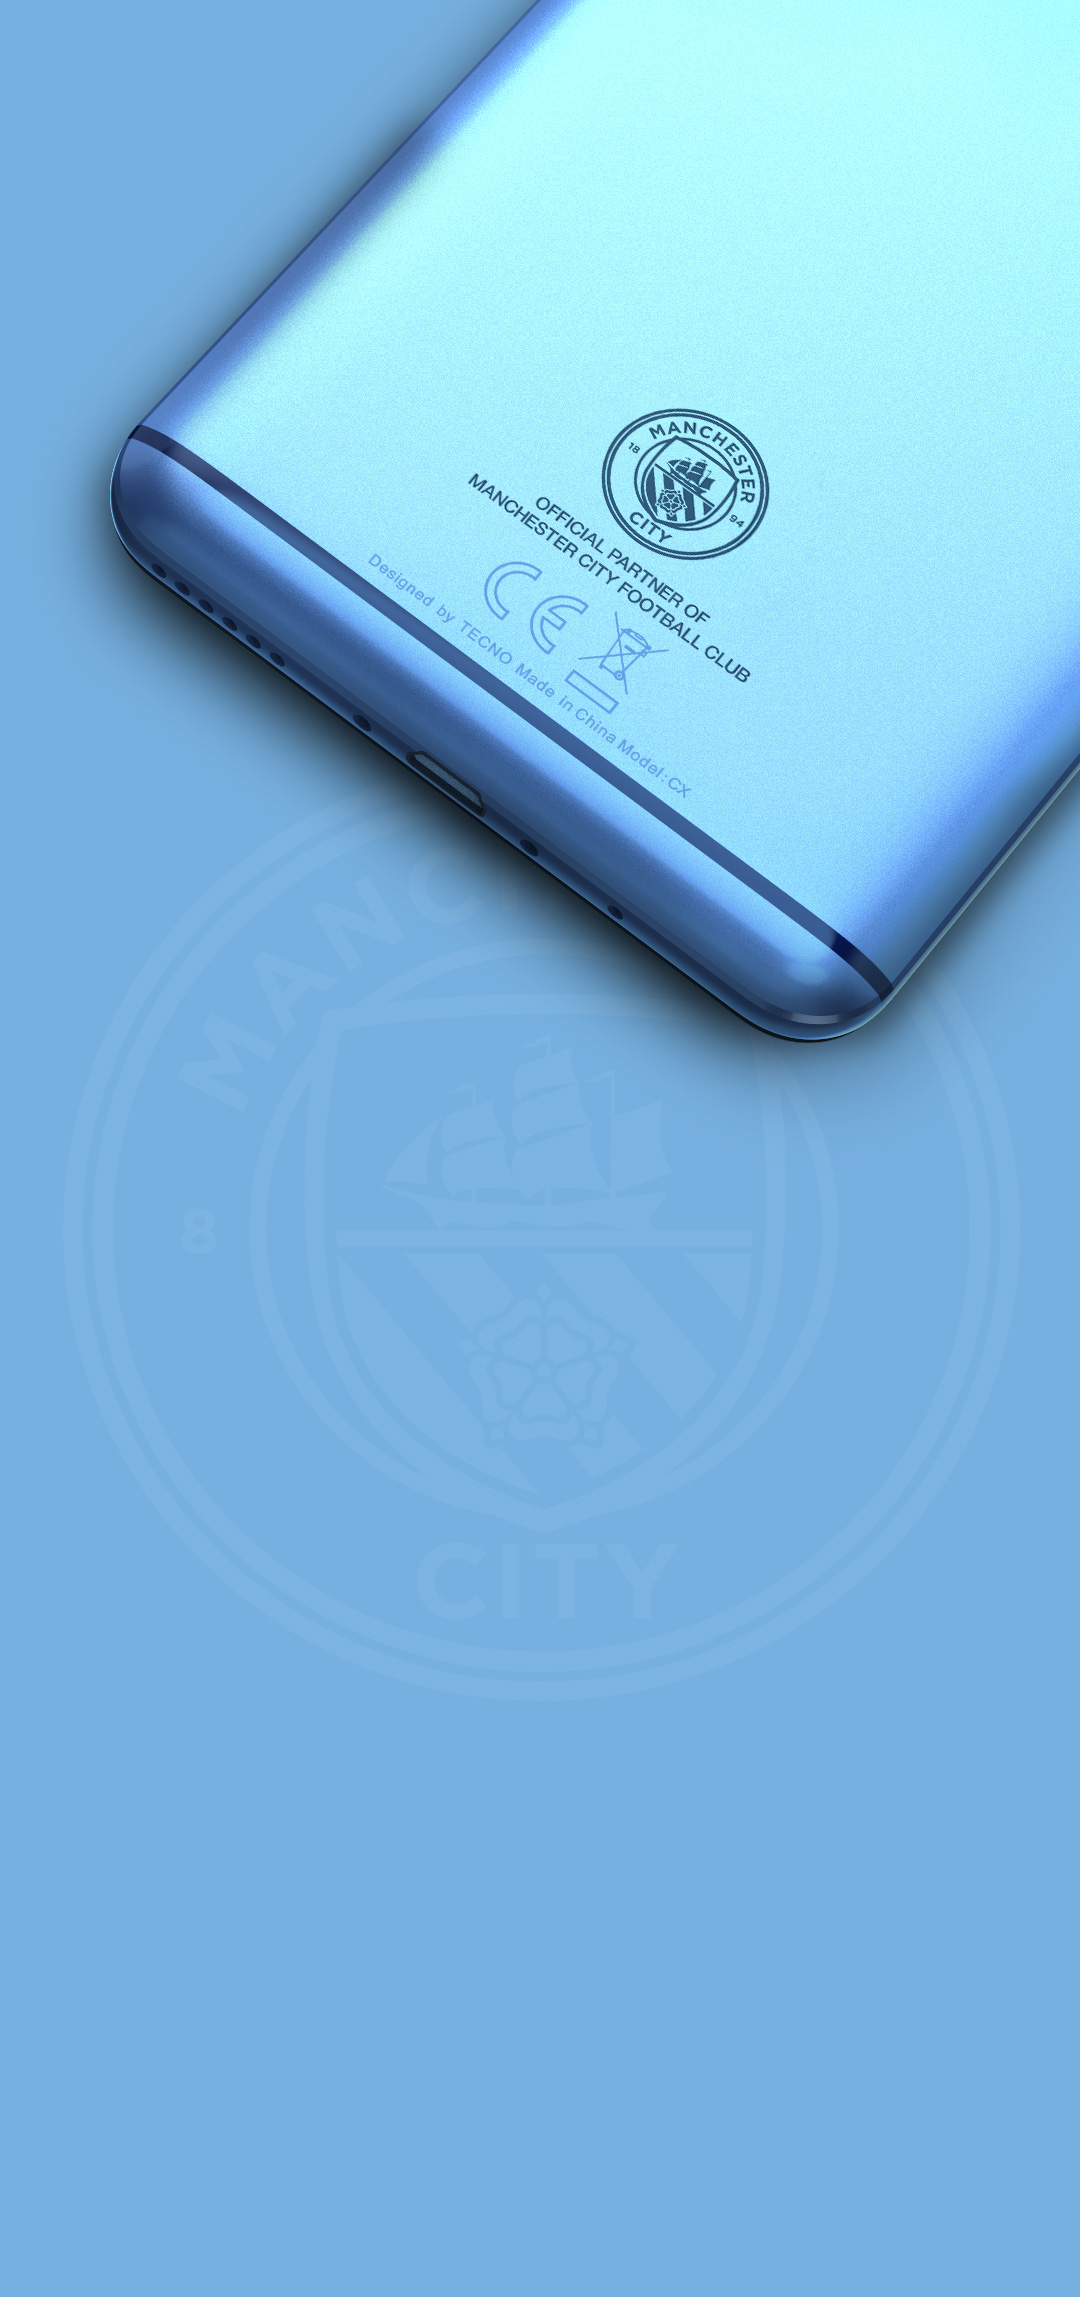 Camon CX Manchester City Limited Edition - TECNO Mobile